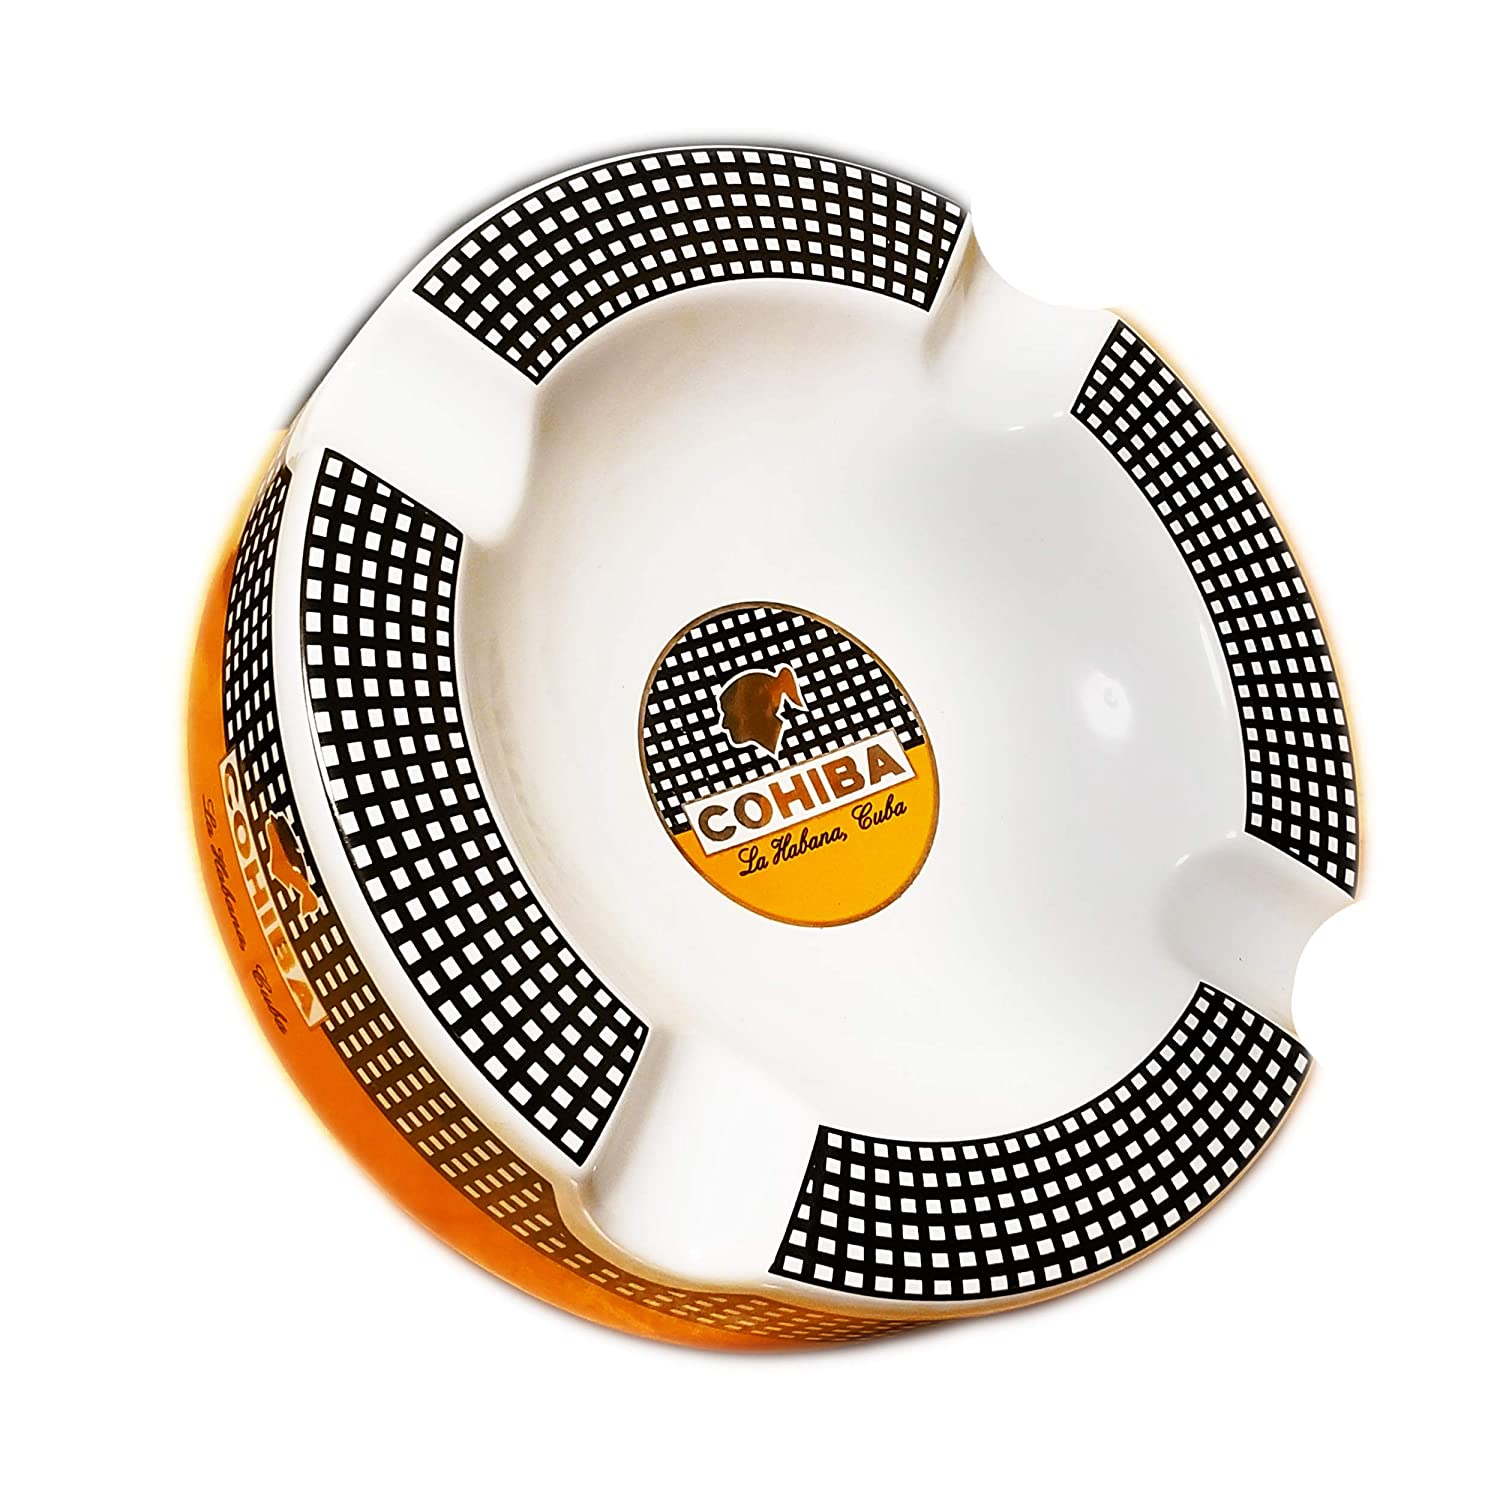 Cohiba Cigars Large Ceramic Ashtray for Patio/out Door Use 4 Cigar Rests … SIKARX